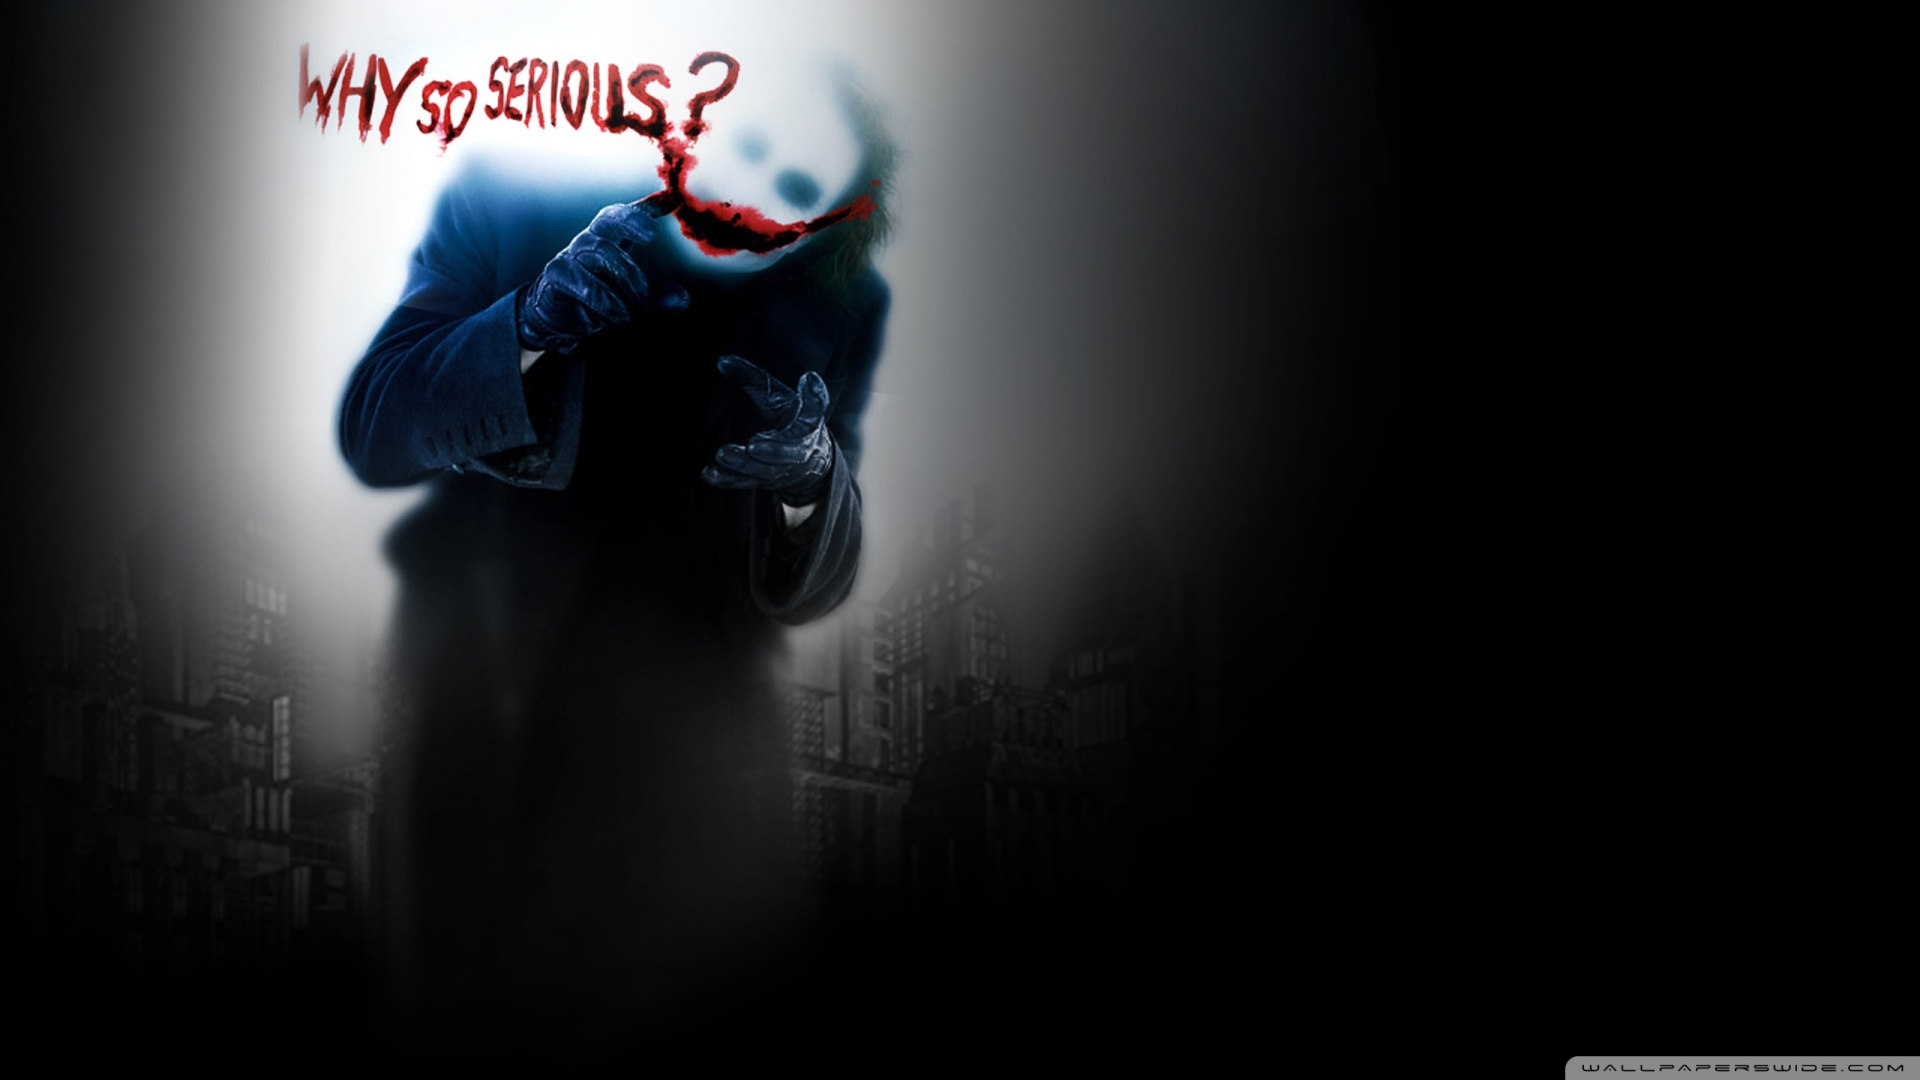 Joker Dark Knight Wallpaper 1920x1080 Joker Dark Knight 1920x1080